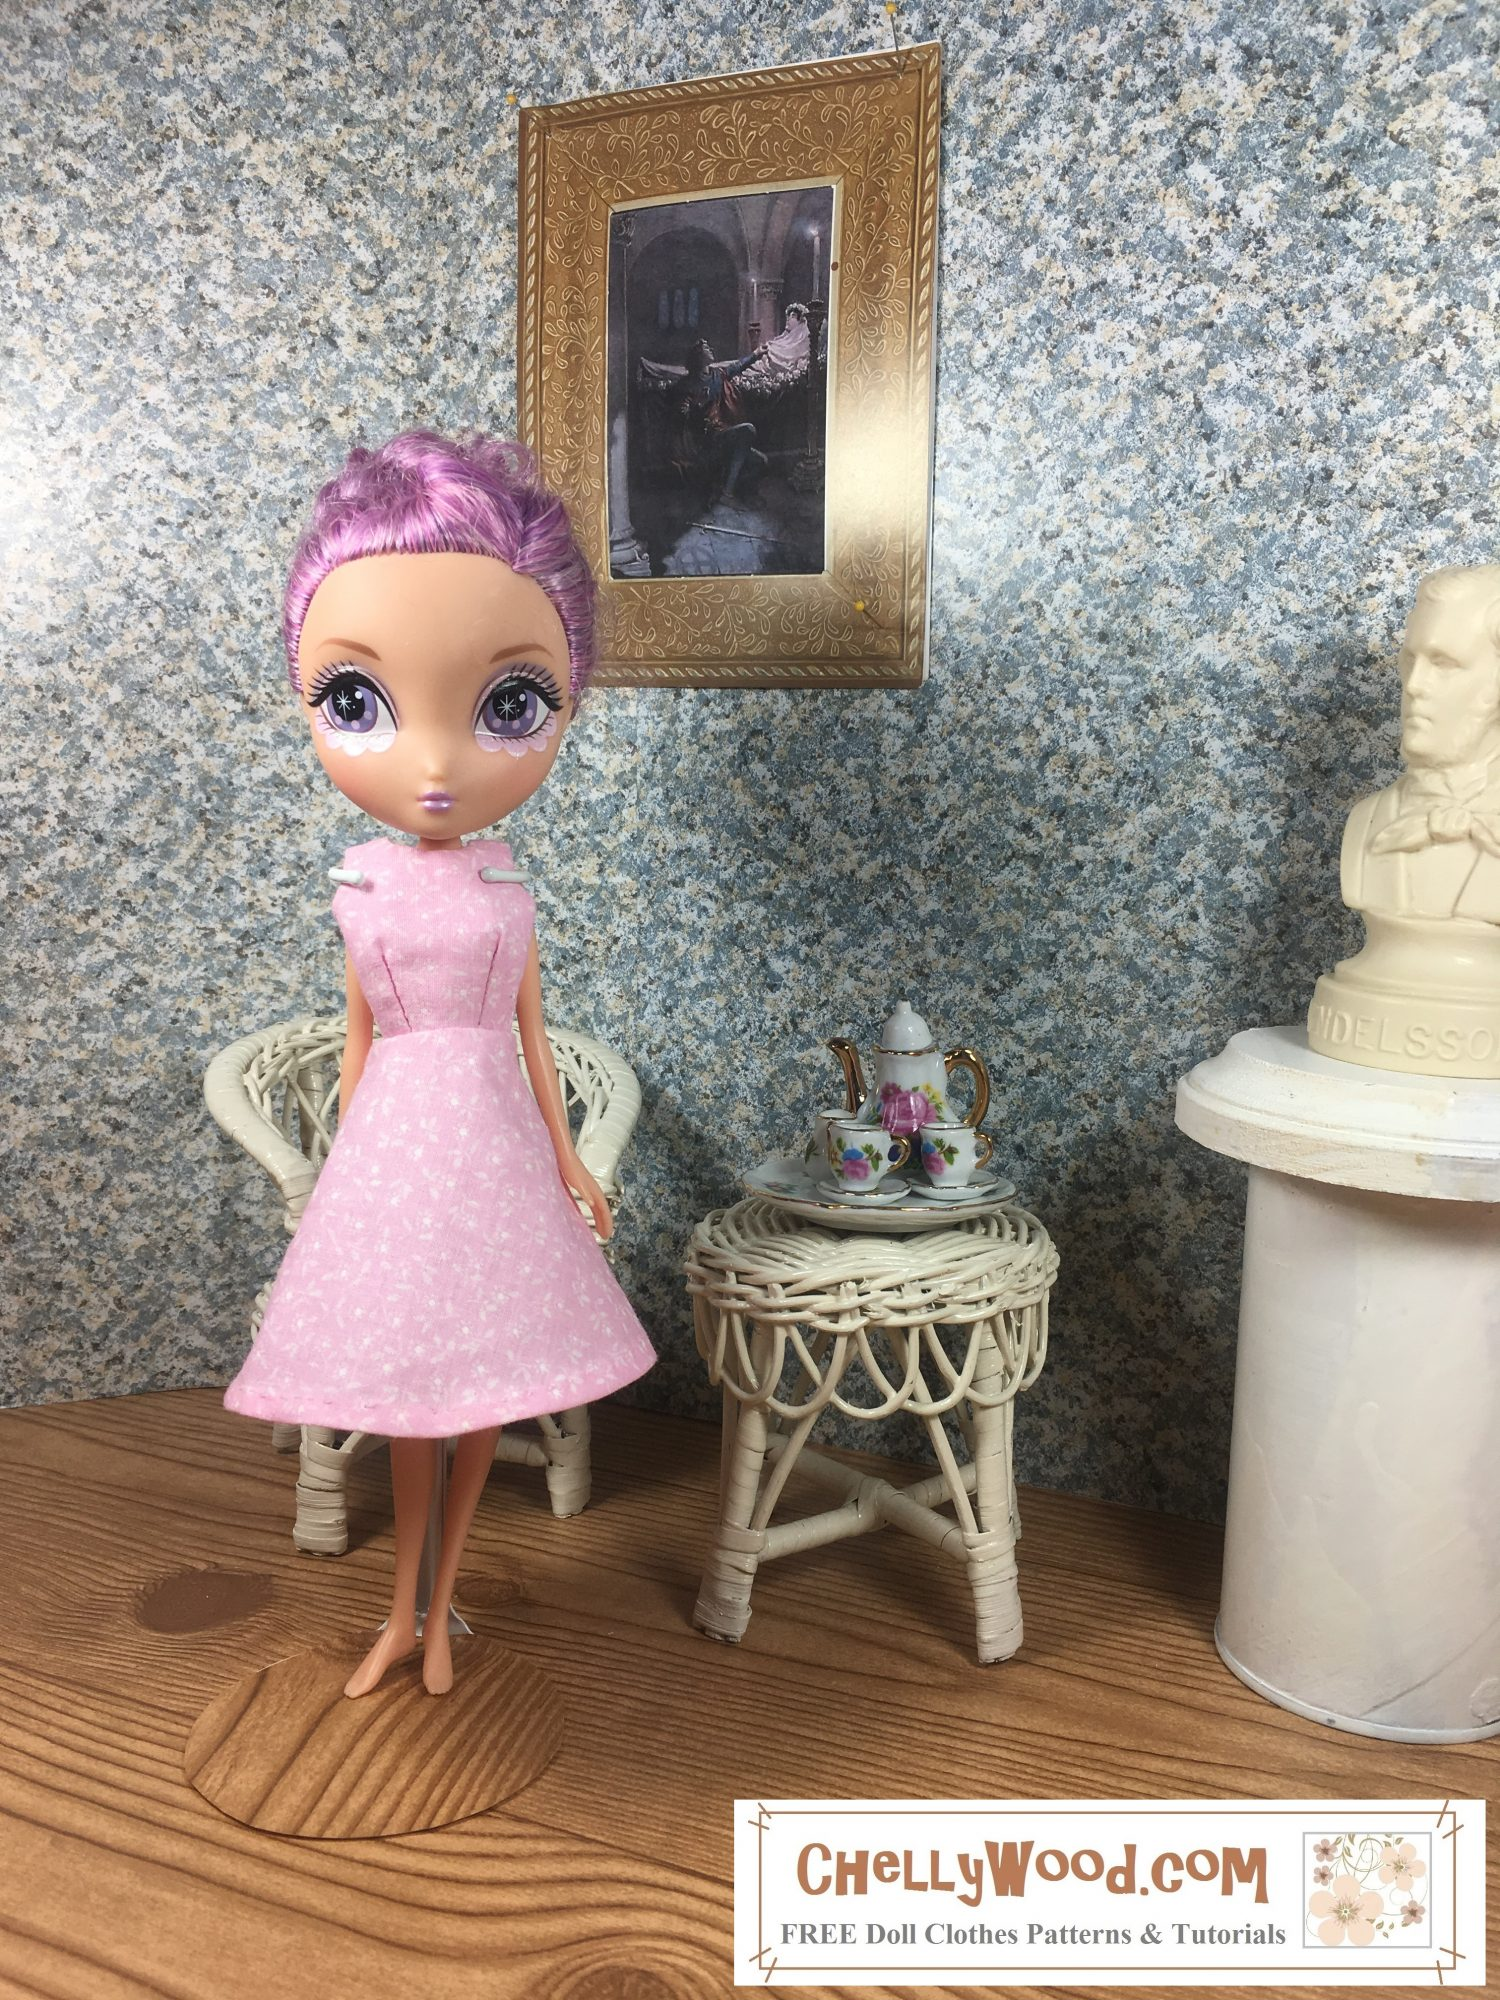 """A Spin Master La Dee Da doll with lavender colored hair stands in a ballroom beside a wicker table that holds a tiny tea set decorated with miniature pink flowers. She stands in front of a matching white wicker chair. On the wall behind her is a gold-framed miniature painting of Romeo and Juliet. Off to the side is a bust of a composer. The doll wears a handmade A line dress made of pink floral cotton. It's a sleeveless dress with a skirt that flares out from just above the waist to just below the doll's knee. She stands with her weight on one let, hands behind her back, in a big eyed pose that says, """"I'm shy!"""""""